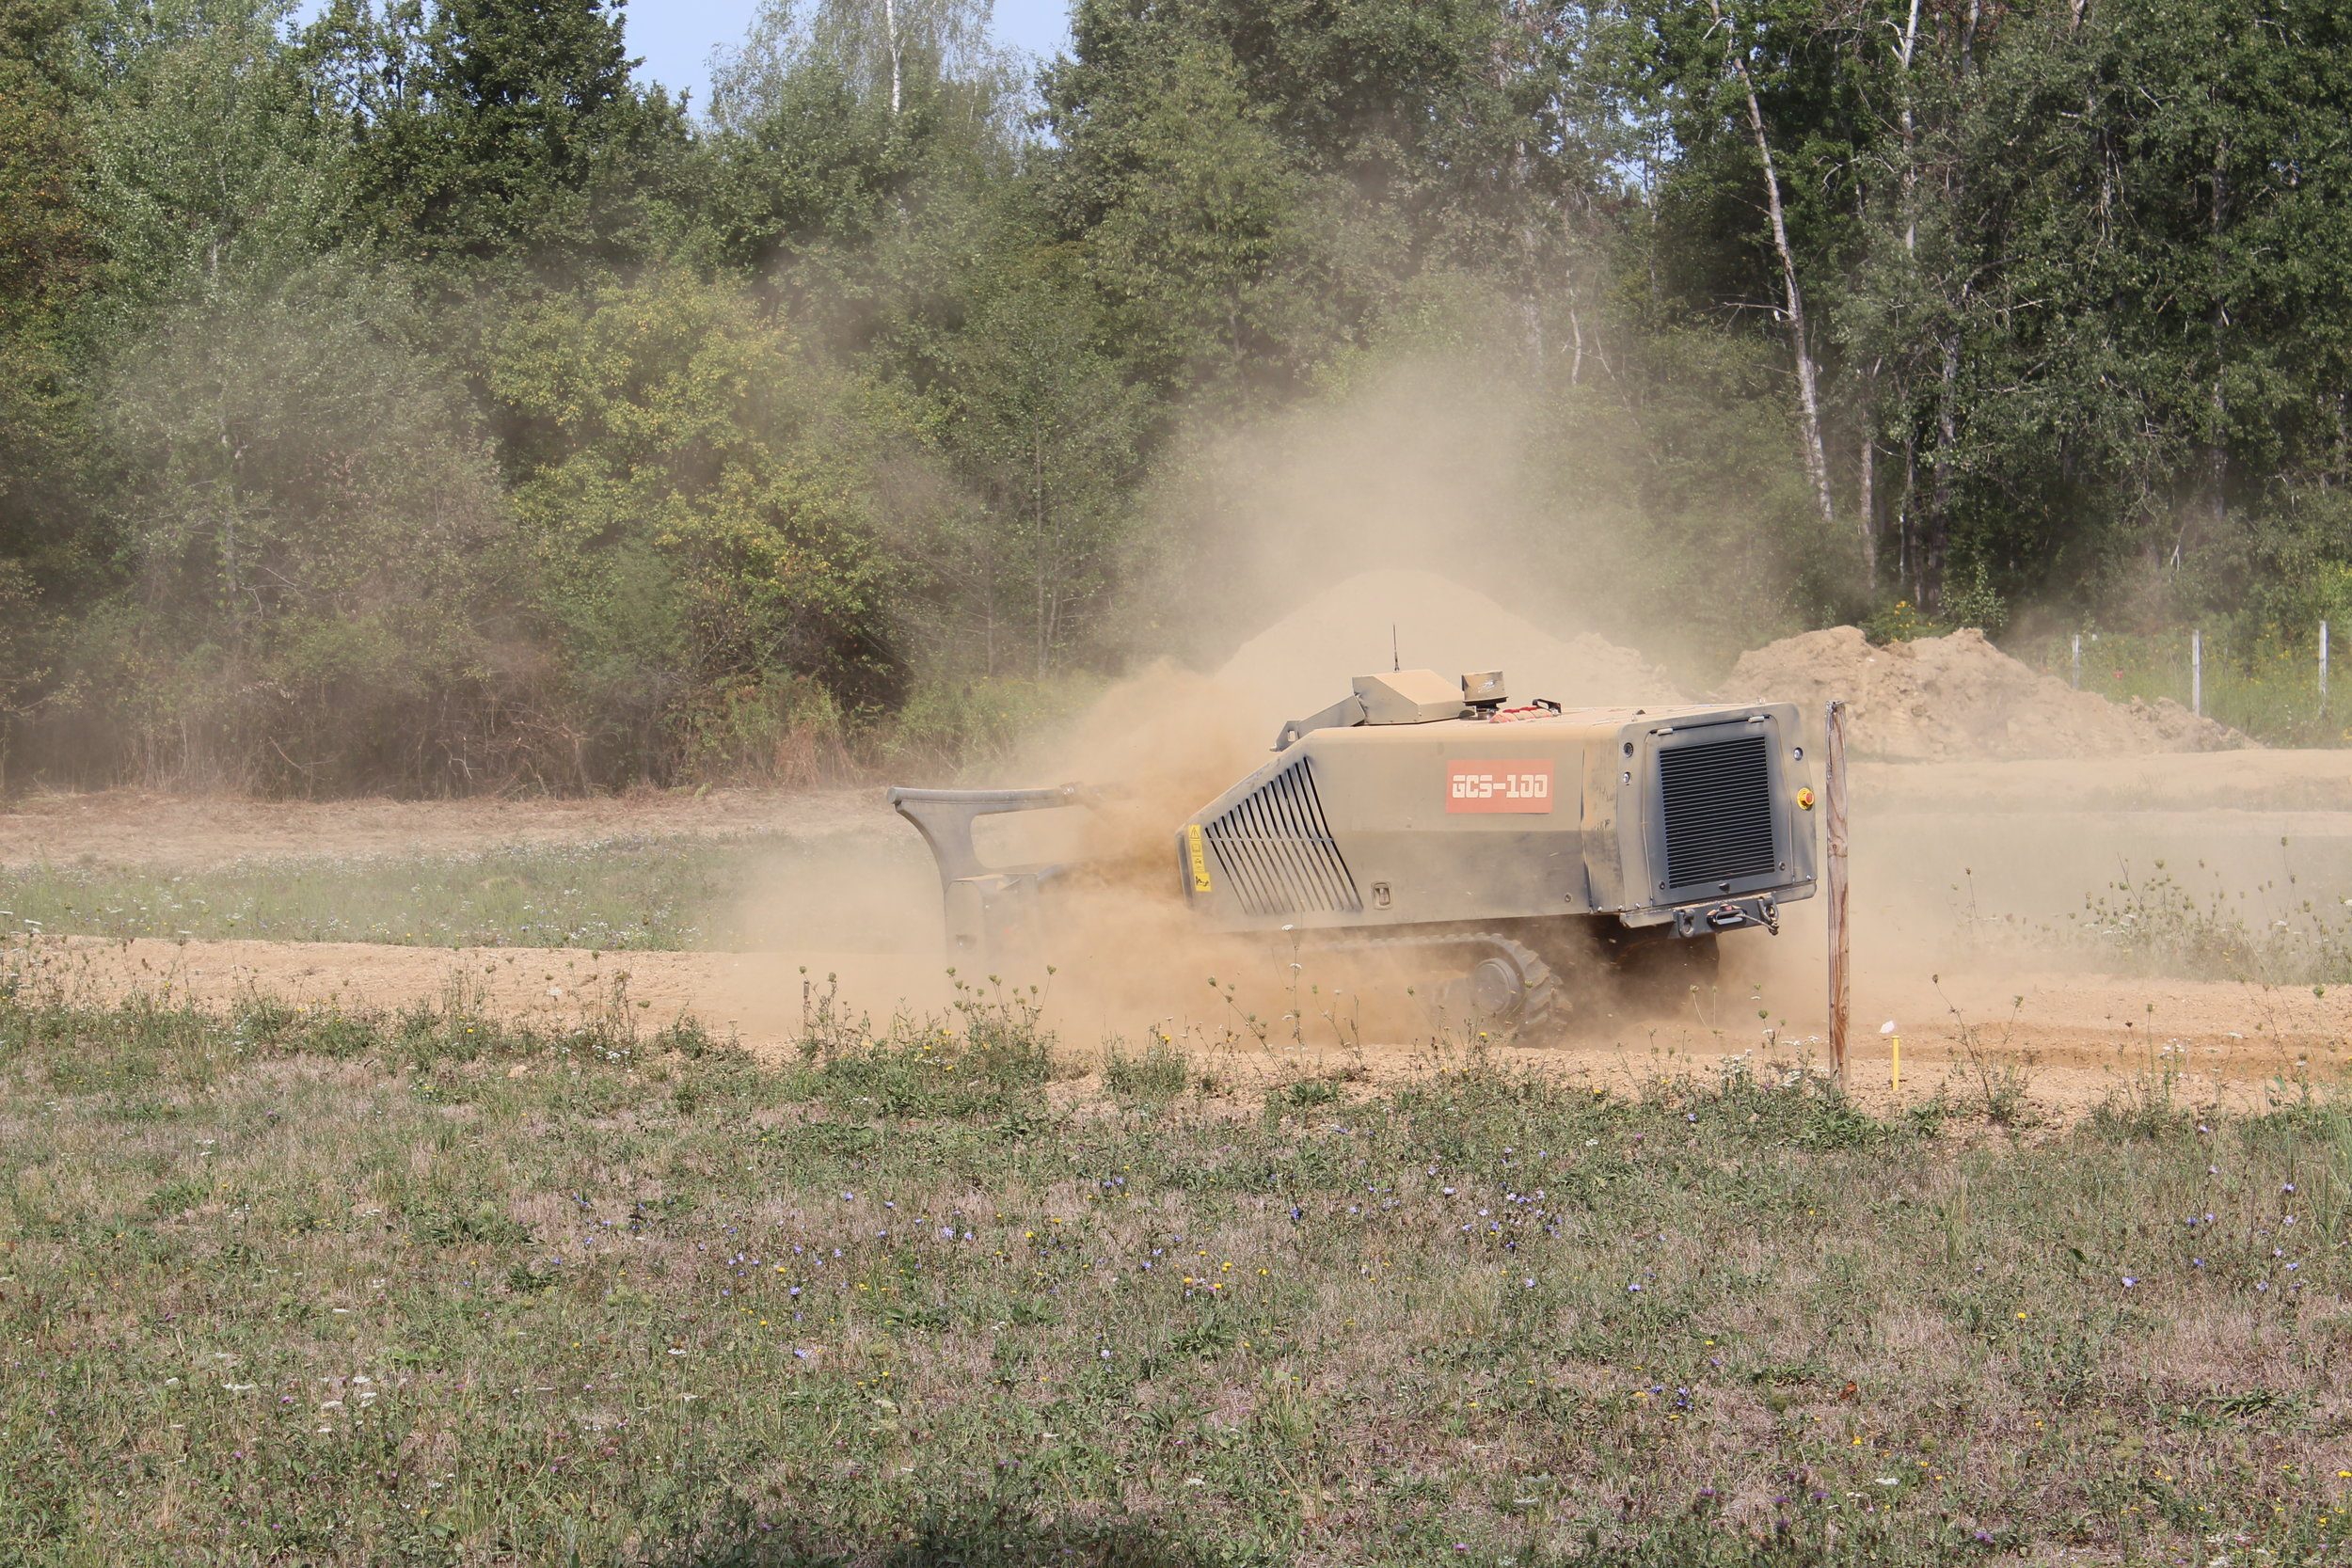 GCS-100 testing at gravel test lane